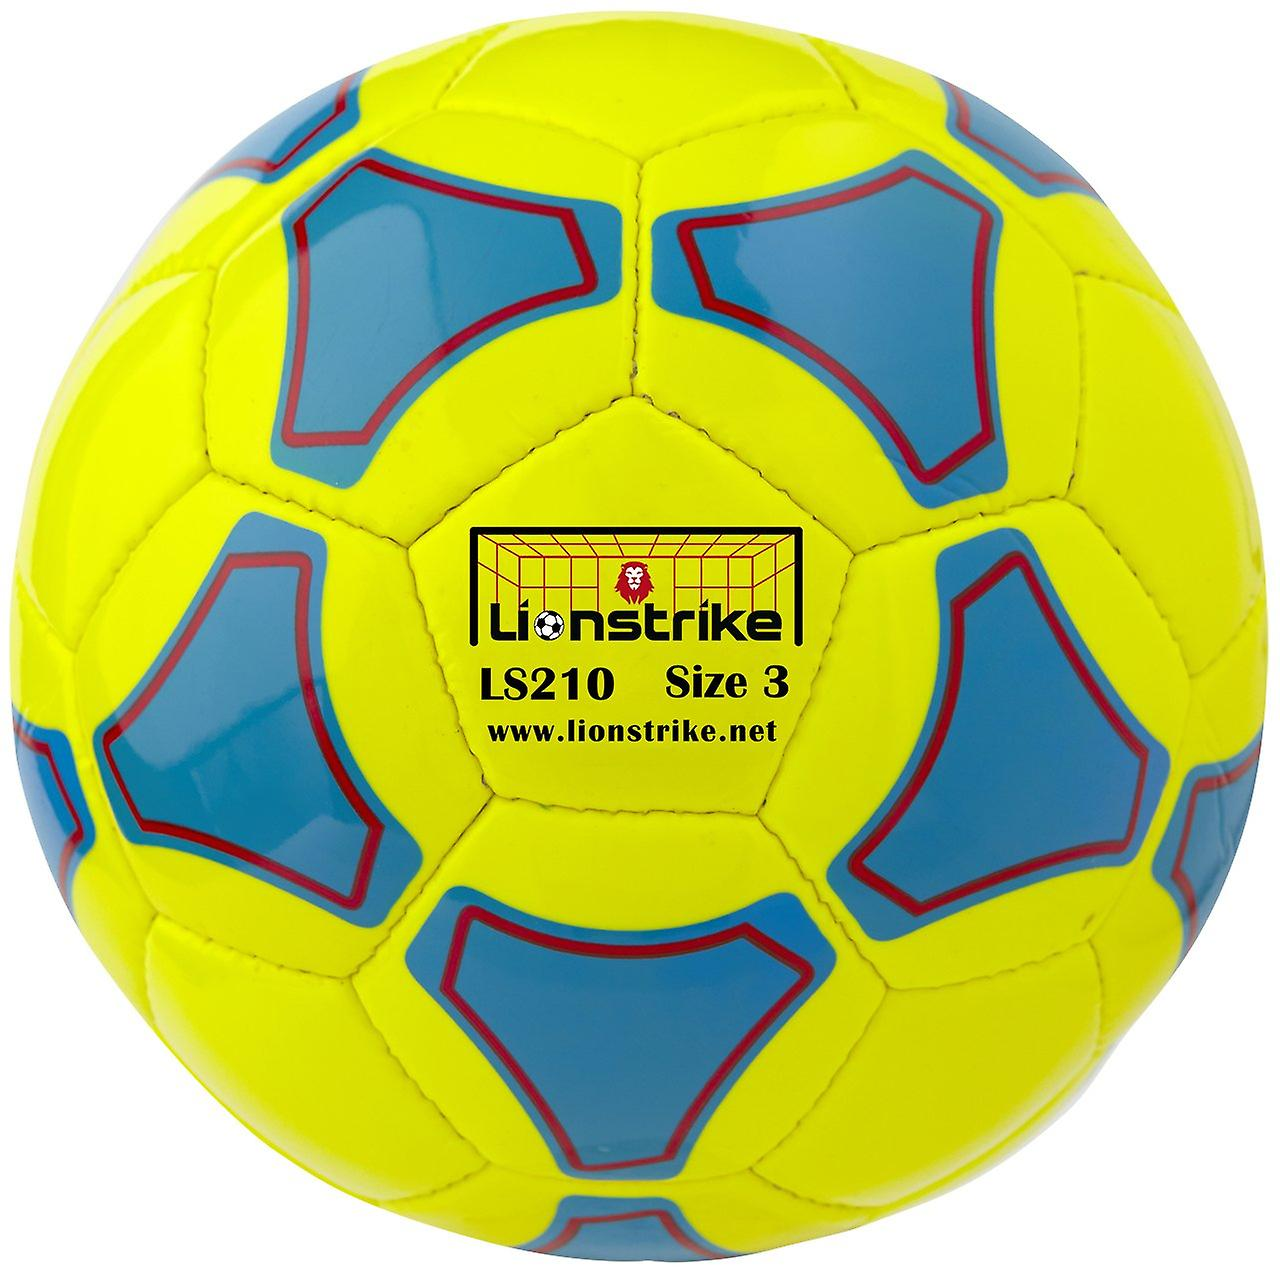 Lionstrike 210 leather football (size 3) - yellow